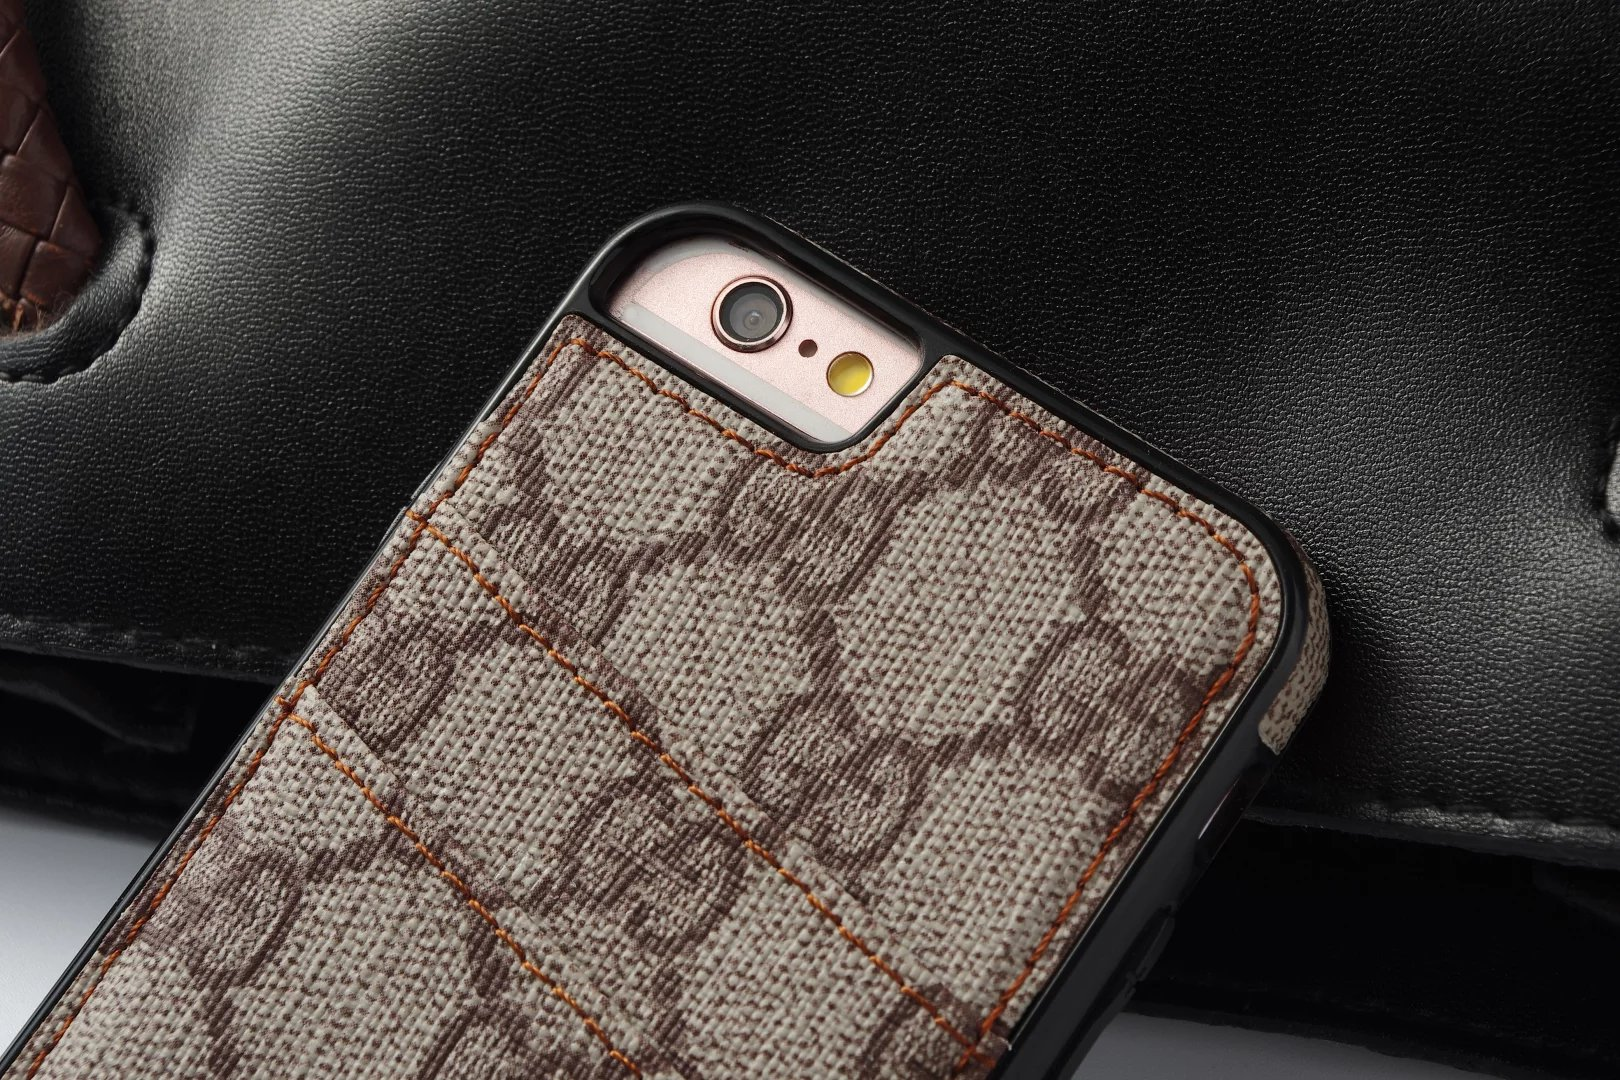 iphone case gestalten die besten iphone hüllen Burberry iphone6 plus hülle s6 handyhülle iphone 6 Plus kas6ttenhülle iphone6 hüllen hülle iphone 3 silikon ca6 6lbst gestalten handyhülle iphone 6 Plus foto